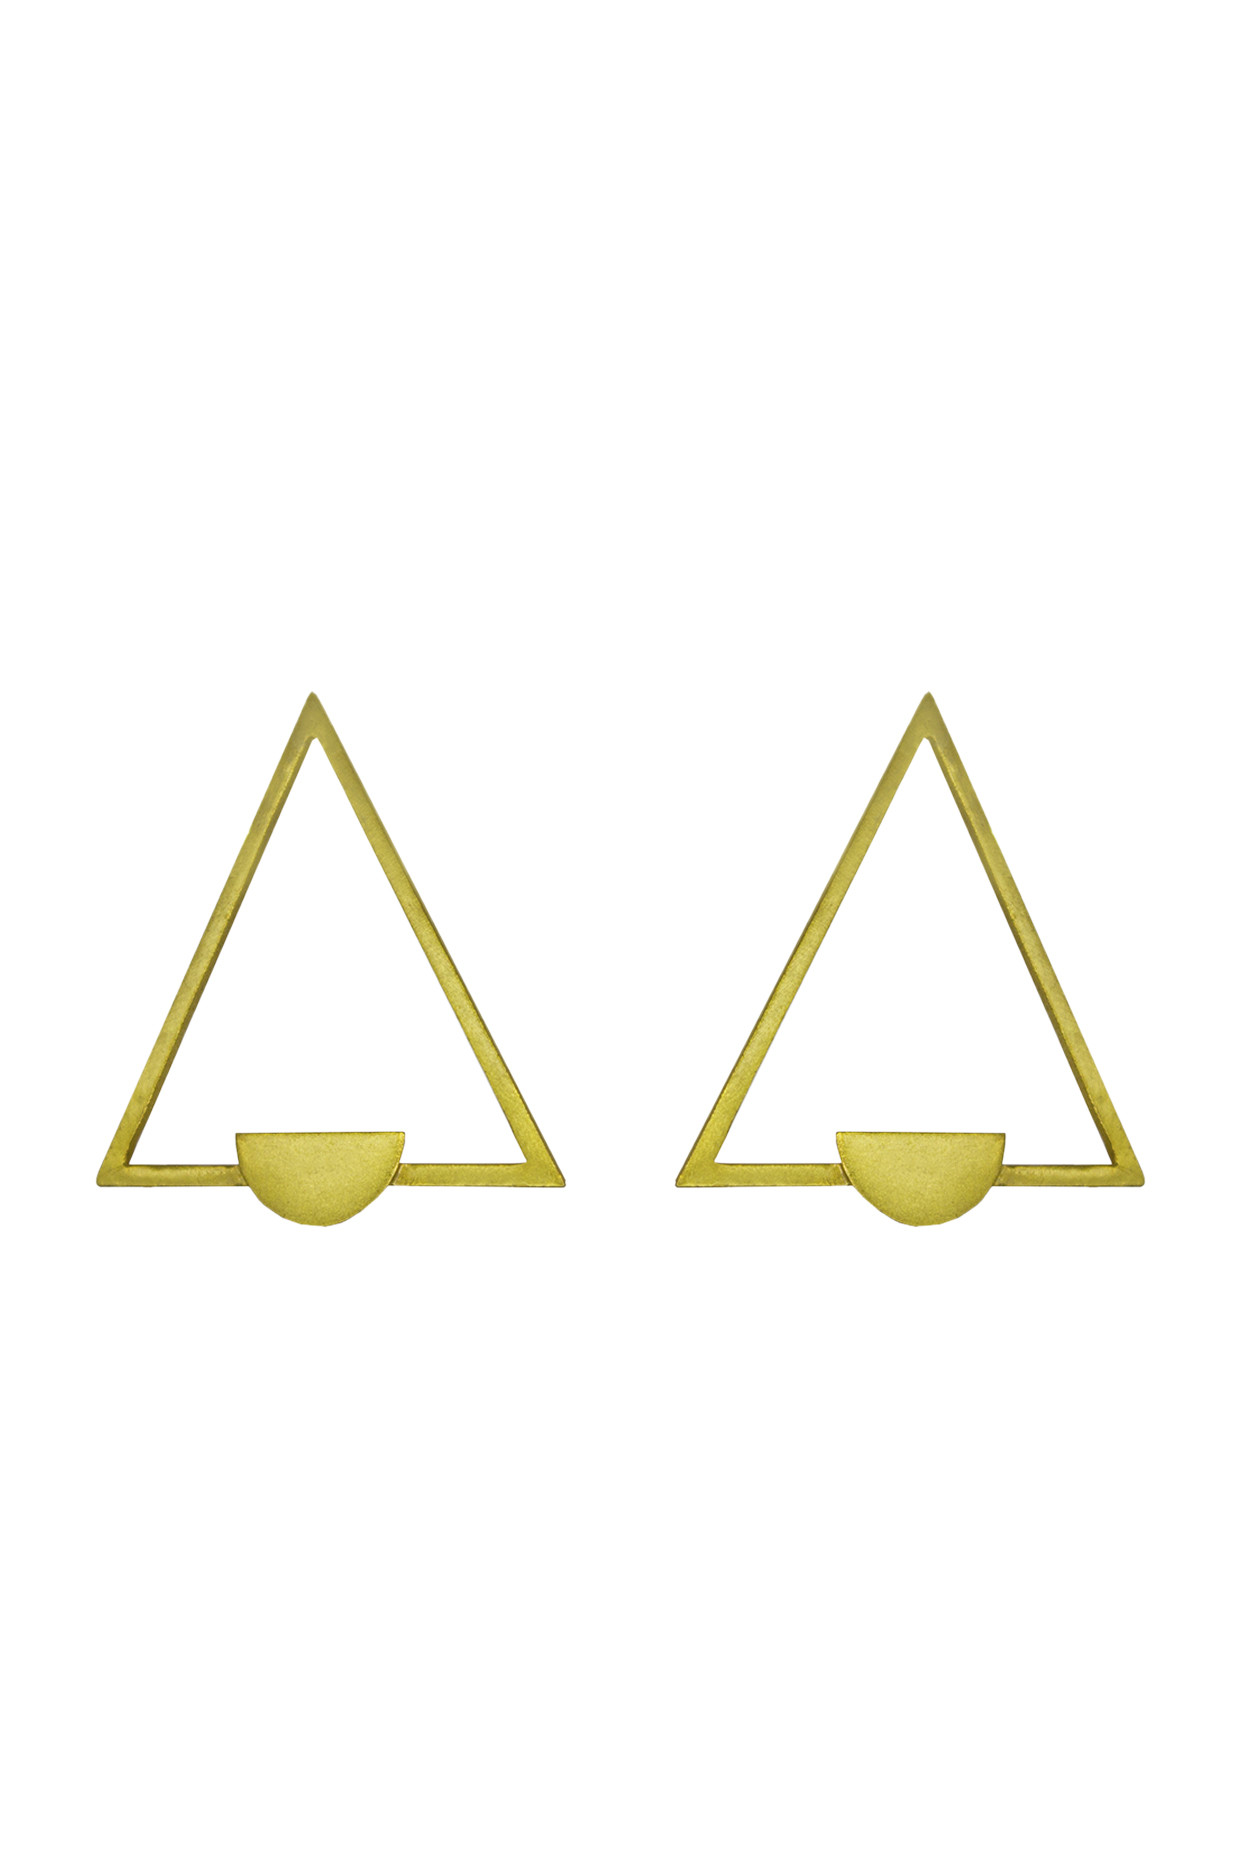 Handcrafted Brass Triangular Earrings In Gold by Toorya